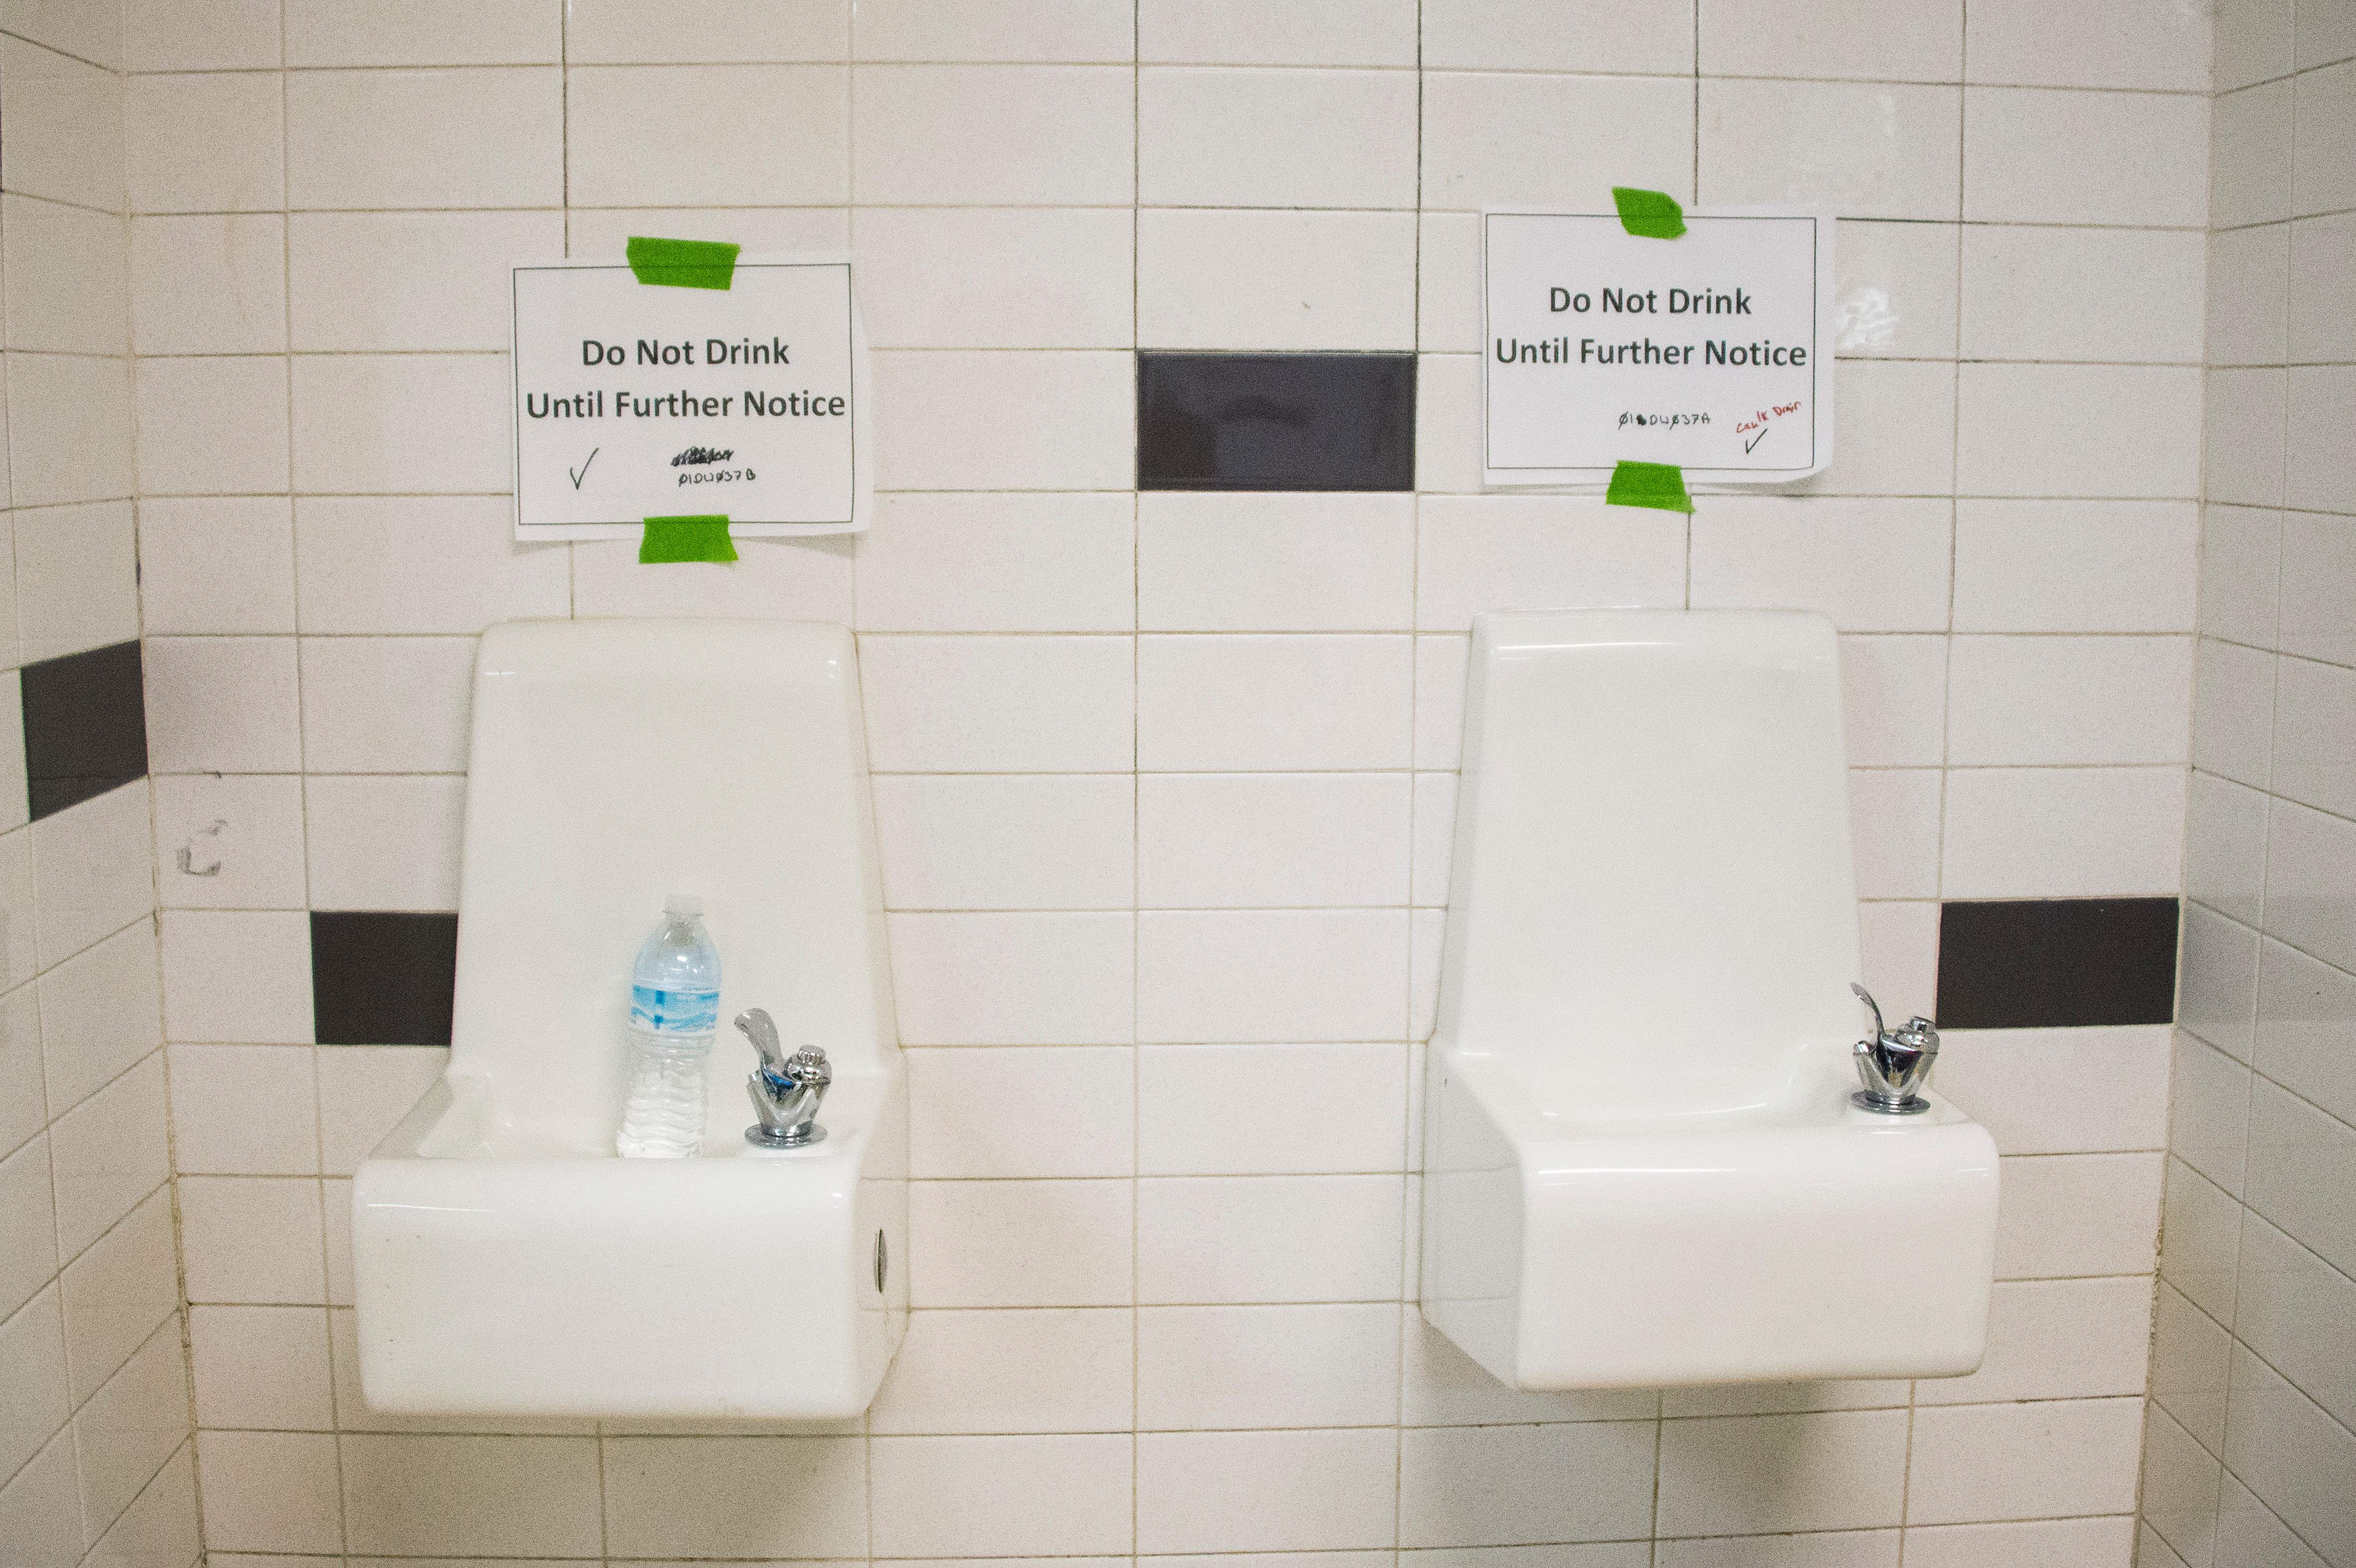 Placards posted above water fountains warn against drinking the water at Flint Northwestern High School in Flint, Michigan, May 4, 2016, where US President Barack Obama met with locals for a neighborhood roundtable on the drinking water crisis.